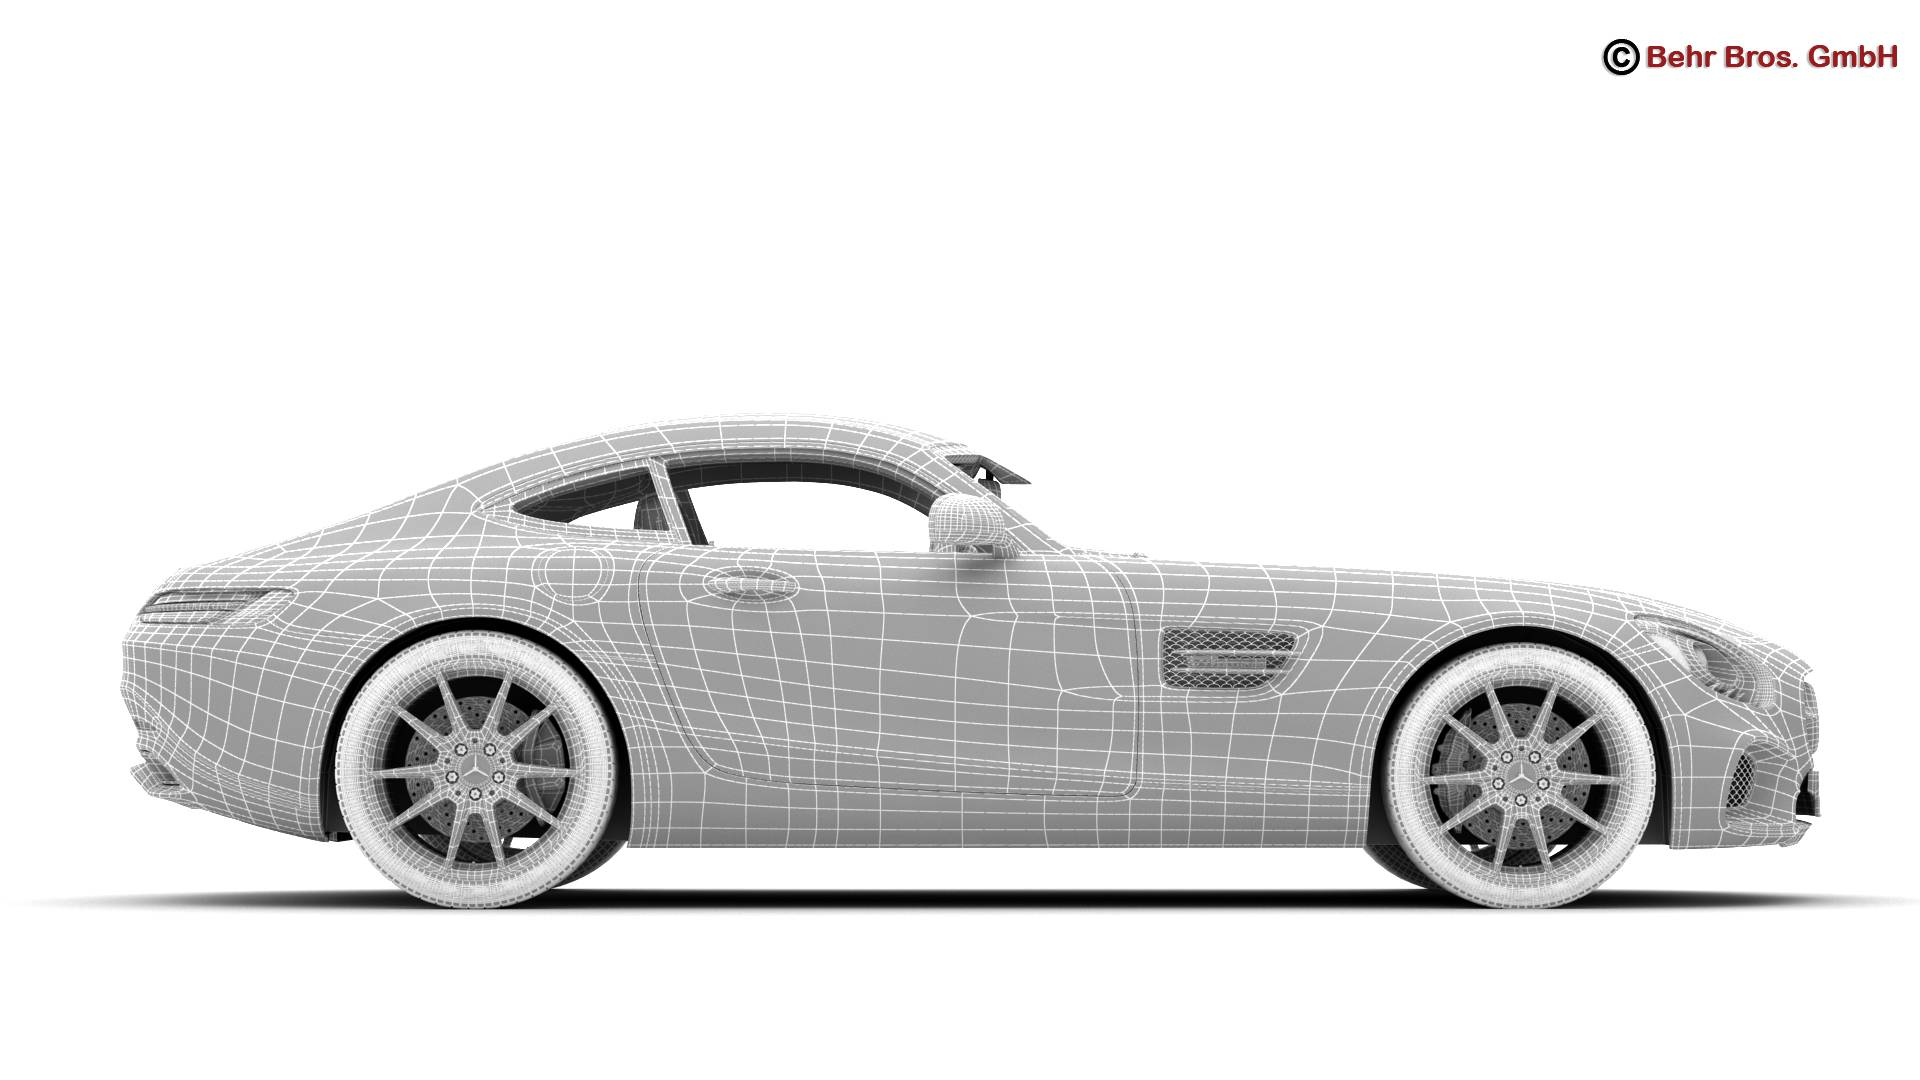 mercedes amg gt 2015 eu and us version 3d model 3ds max fbx c4d lwo ma mb obj 210132